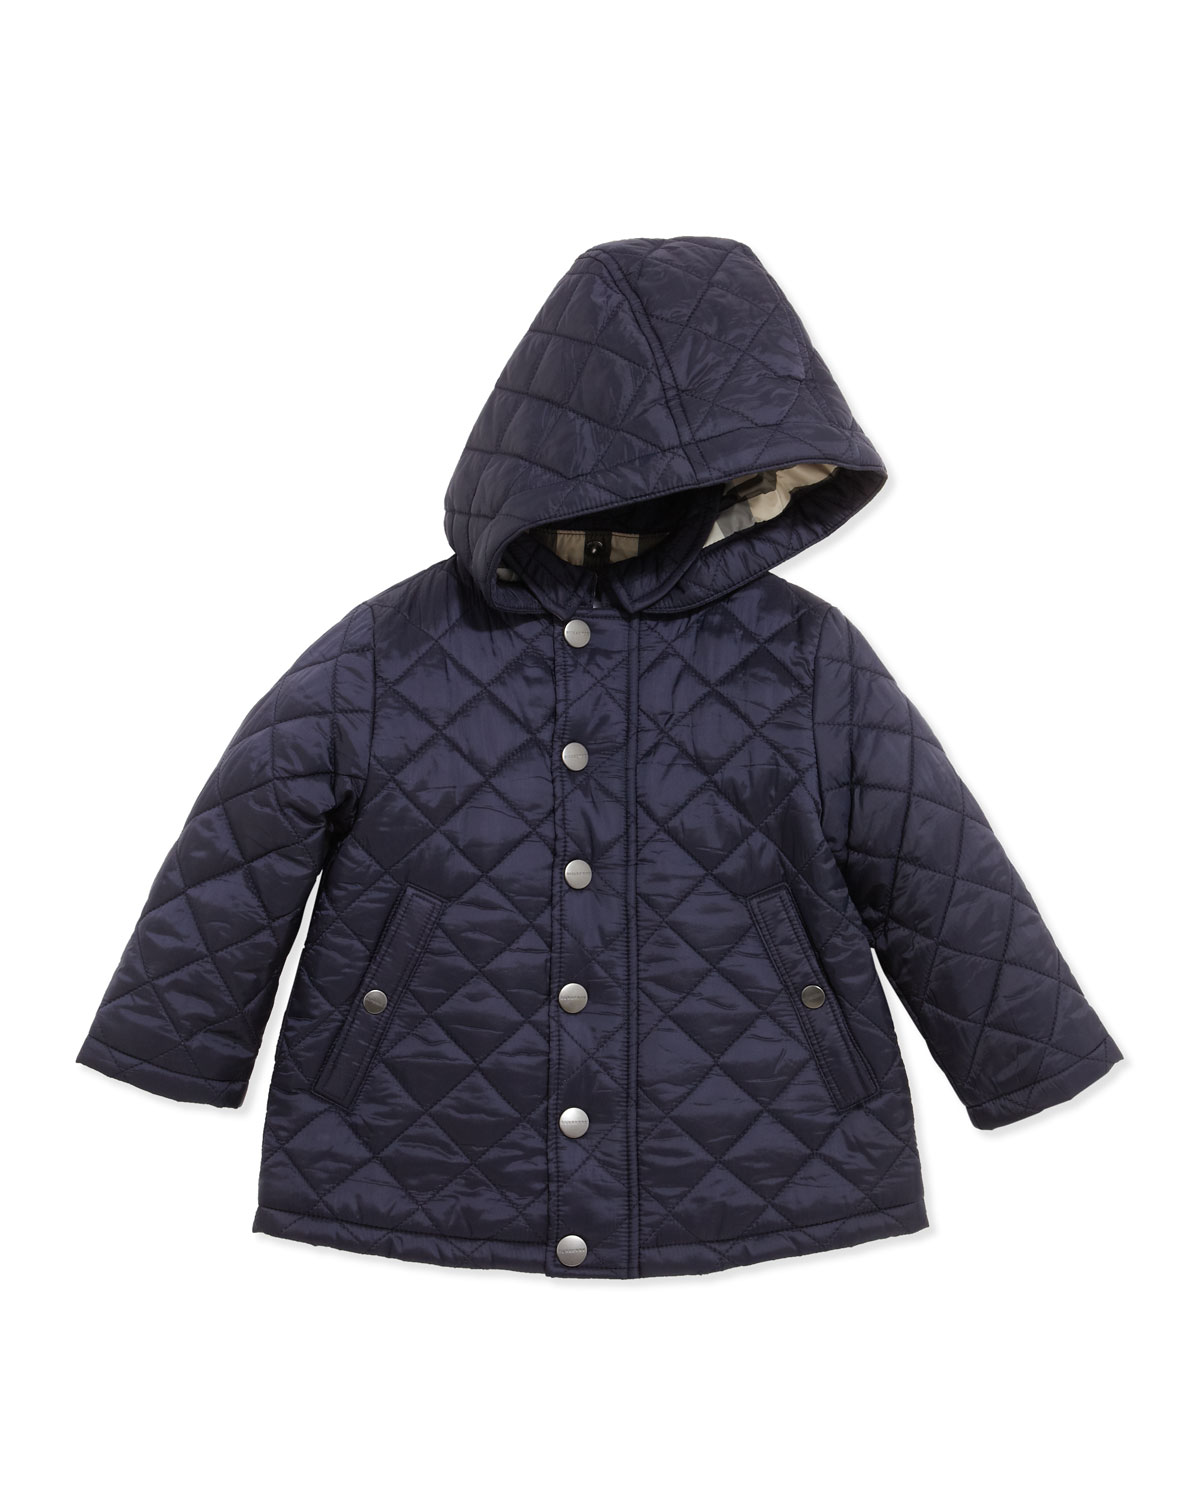 Burberry Jerry Lightweight Quilted Jacket With Hood Navy 6 18